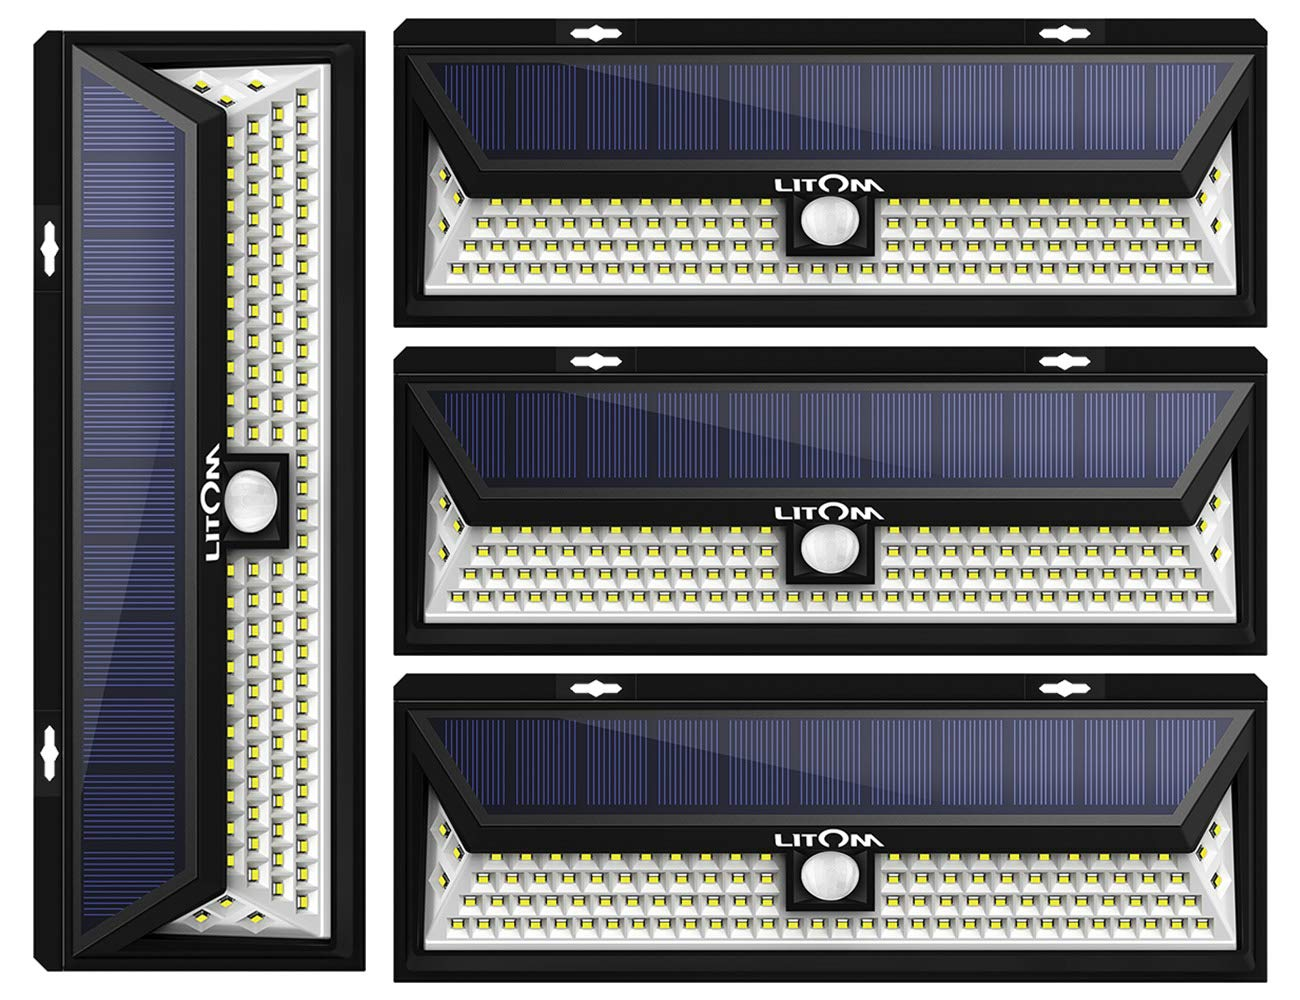 LITOM Enhanced 102 LED Super Bright Solar Lights Outdoor, Solar Motion Sensor Lights with 270°Wide Angle, IP65 Waterproof, Easy-to-Install Security Lights for Front Door, Yard, Garage, Deck(4 Pack)